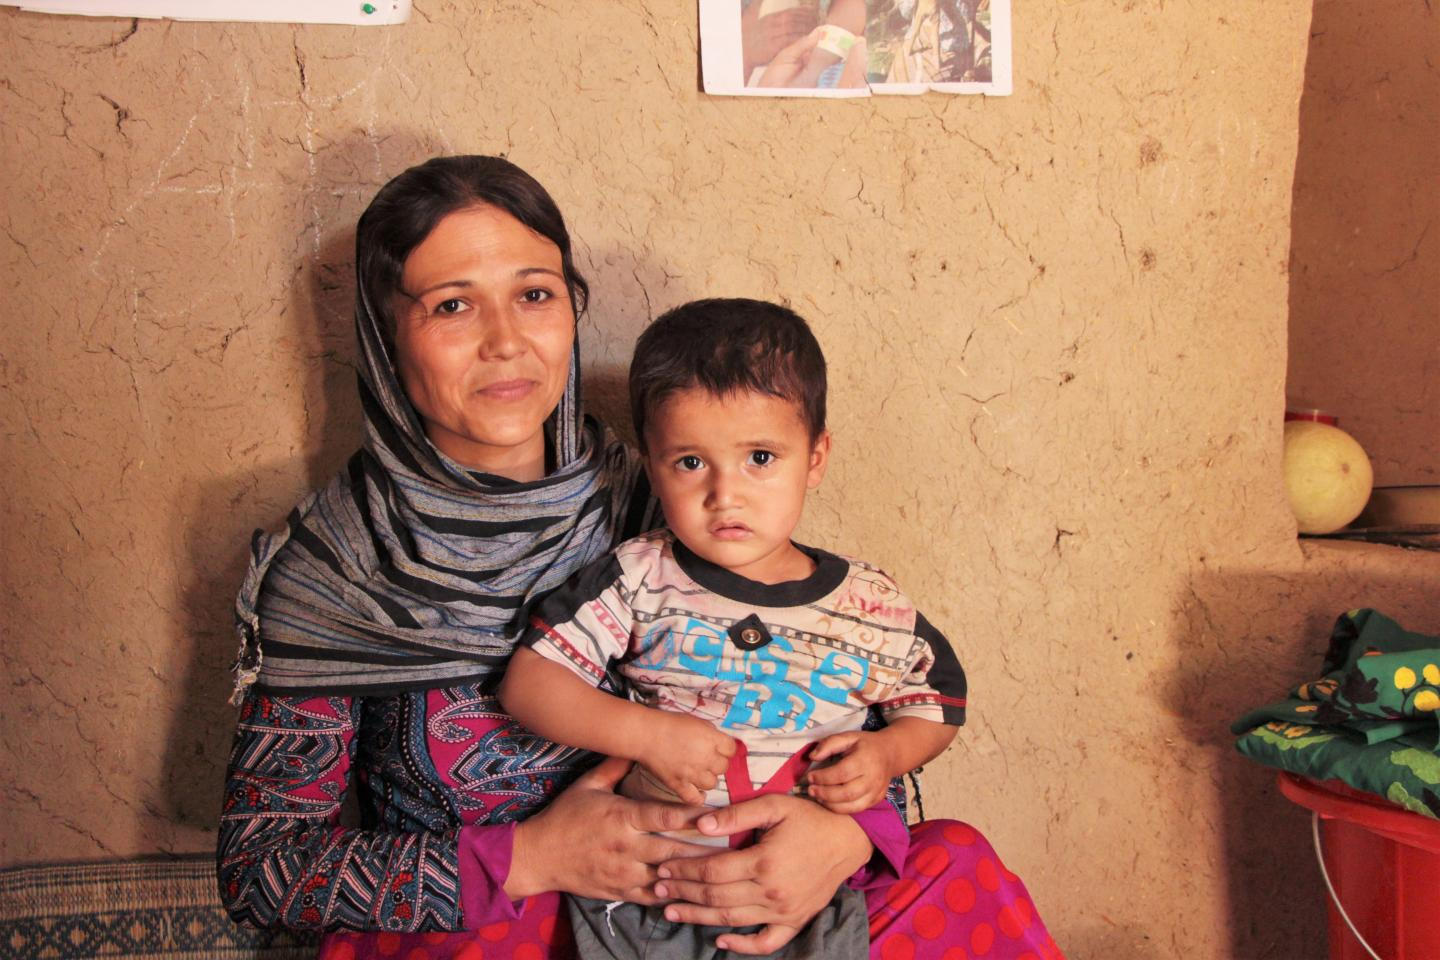 A mother and her child, formerly malnourished who benefited from her sessions and her child now fully regained weight